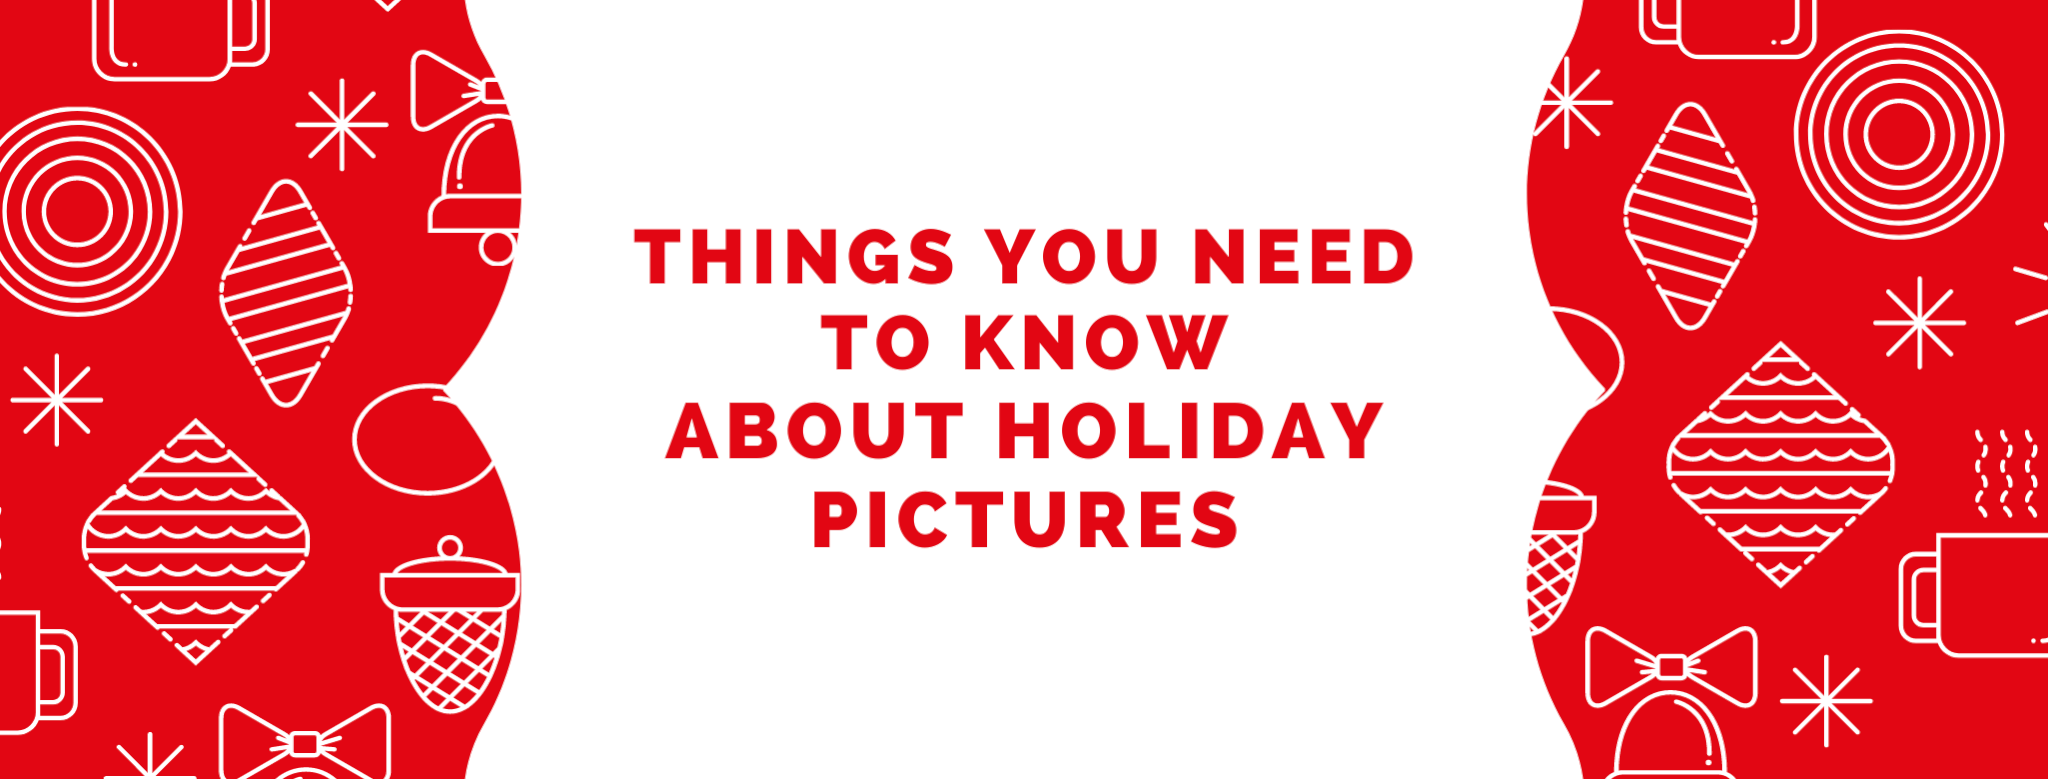 Things You Need to Know About Holiday Pictures